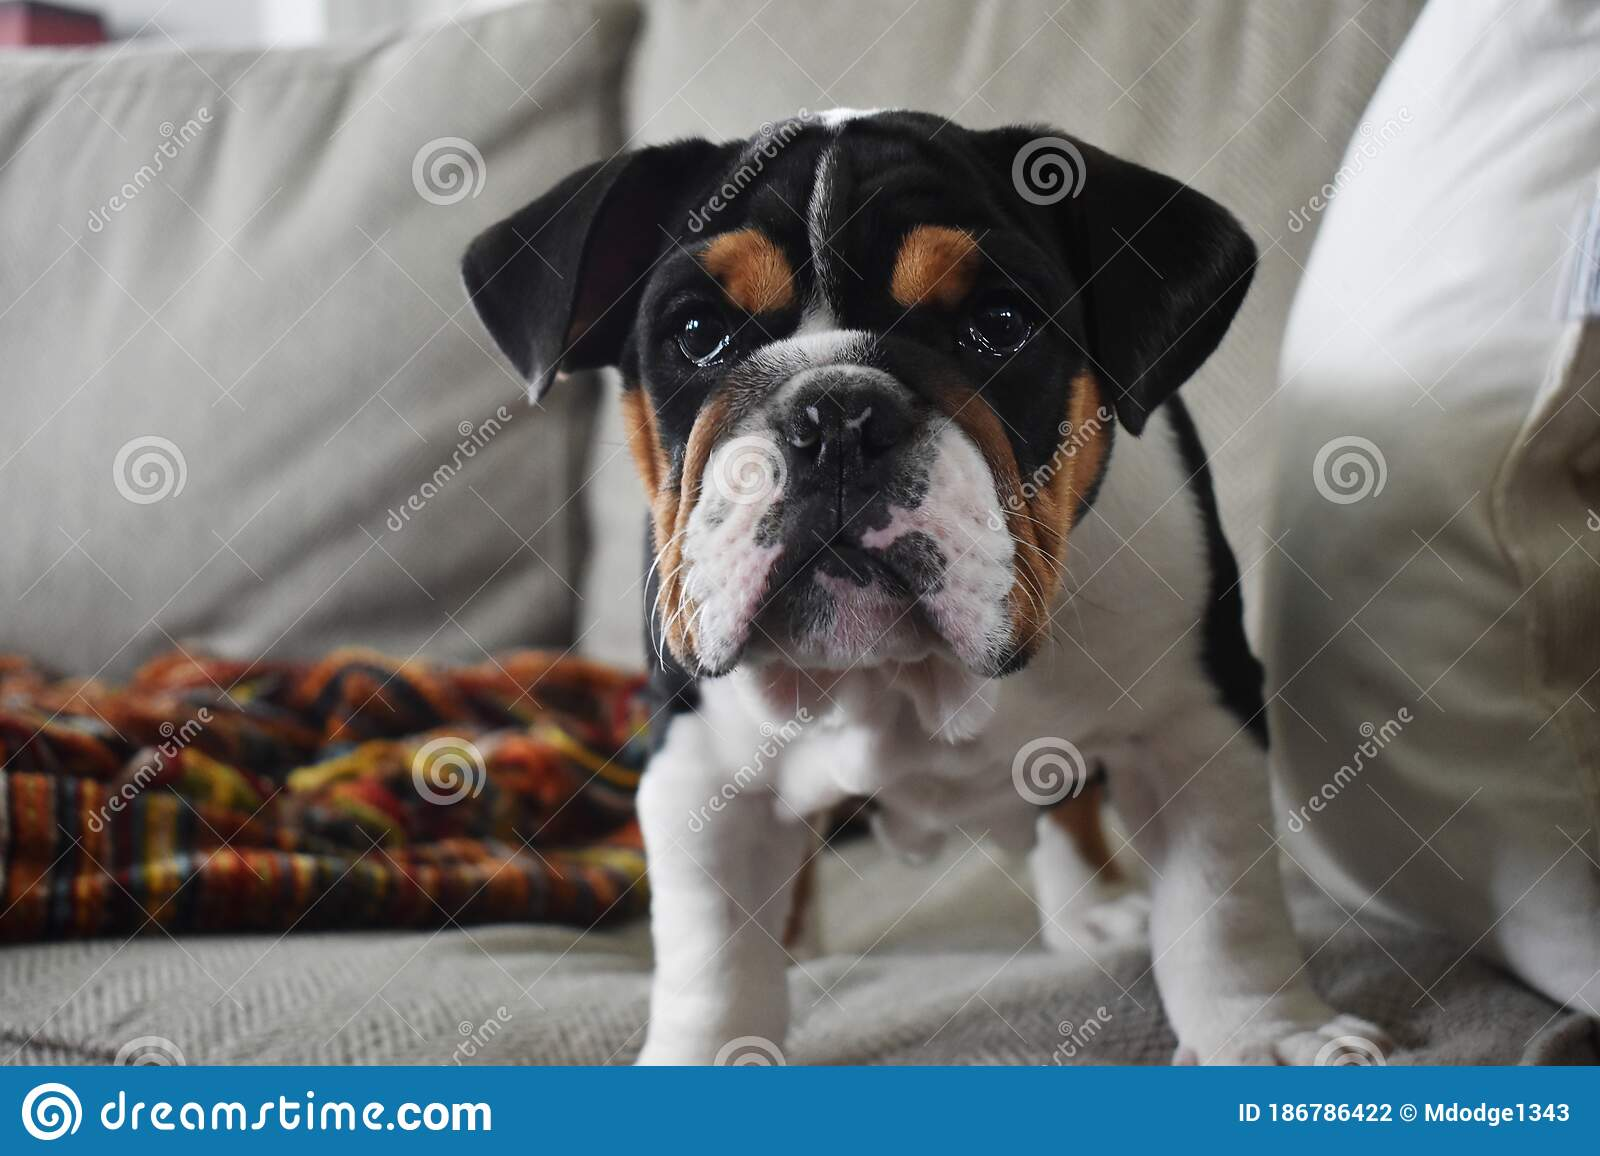 English Bulldog Puppy Stock Photo Image Of Babypuppy 186786422